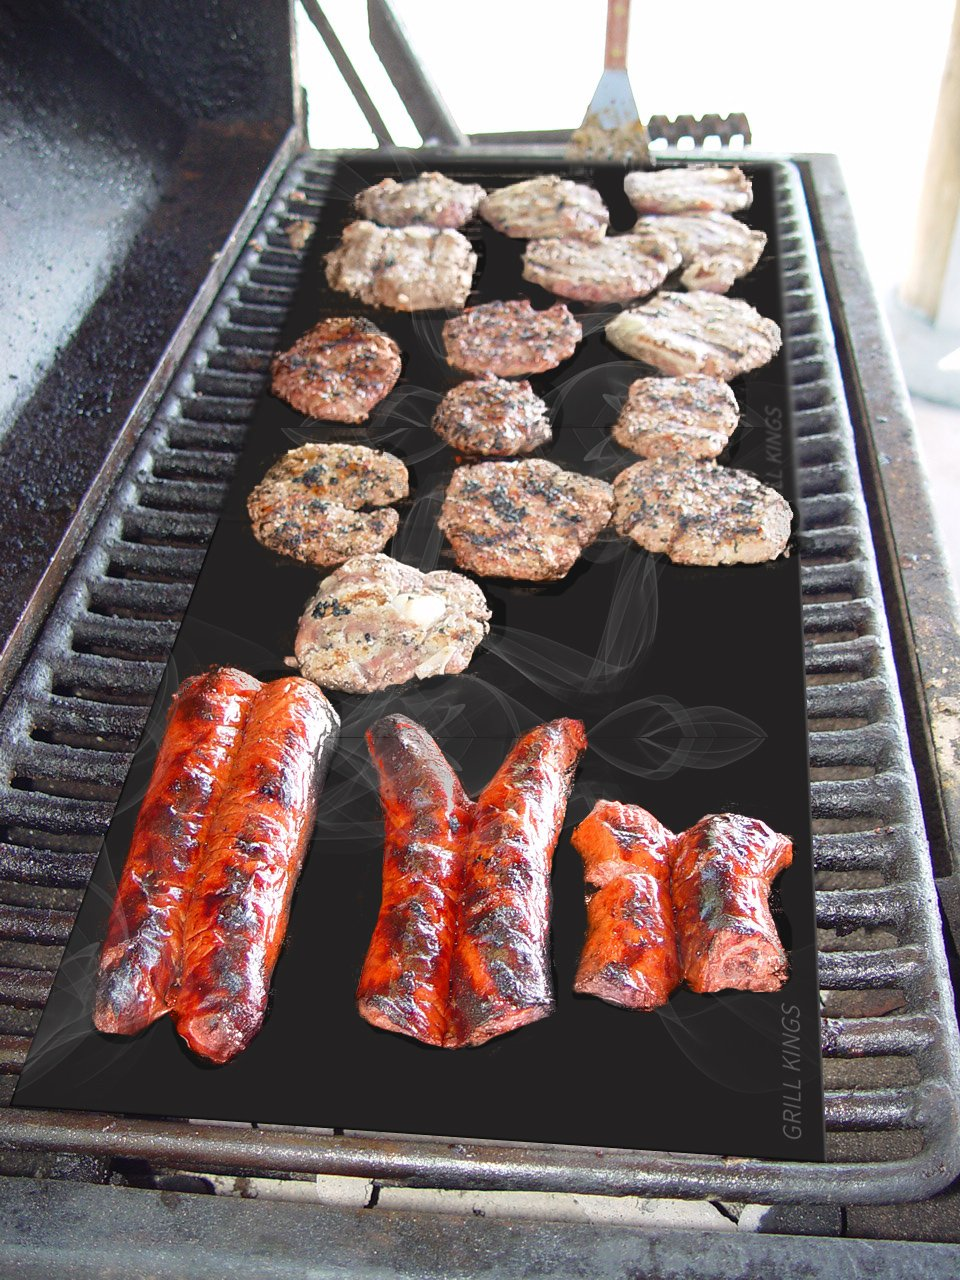 amazon com grill kings non stick barbecue grill mat for grilling